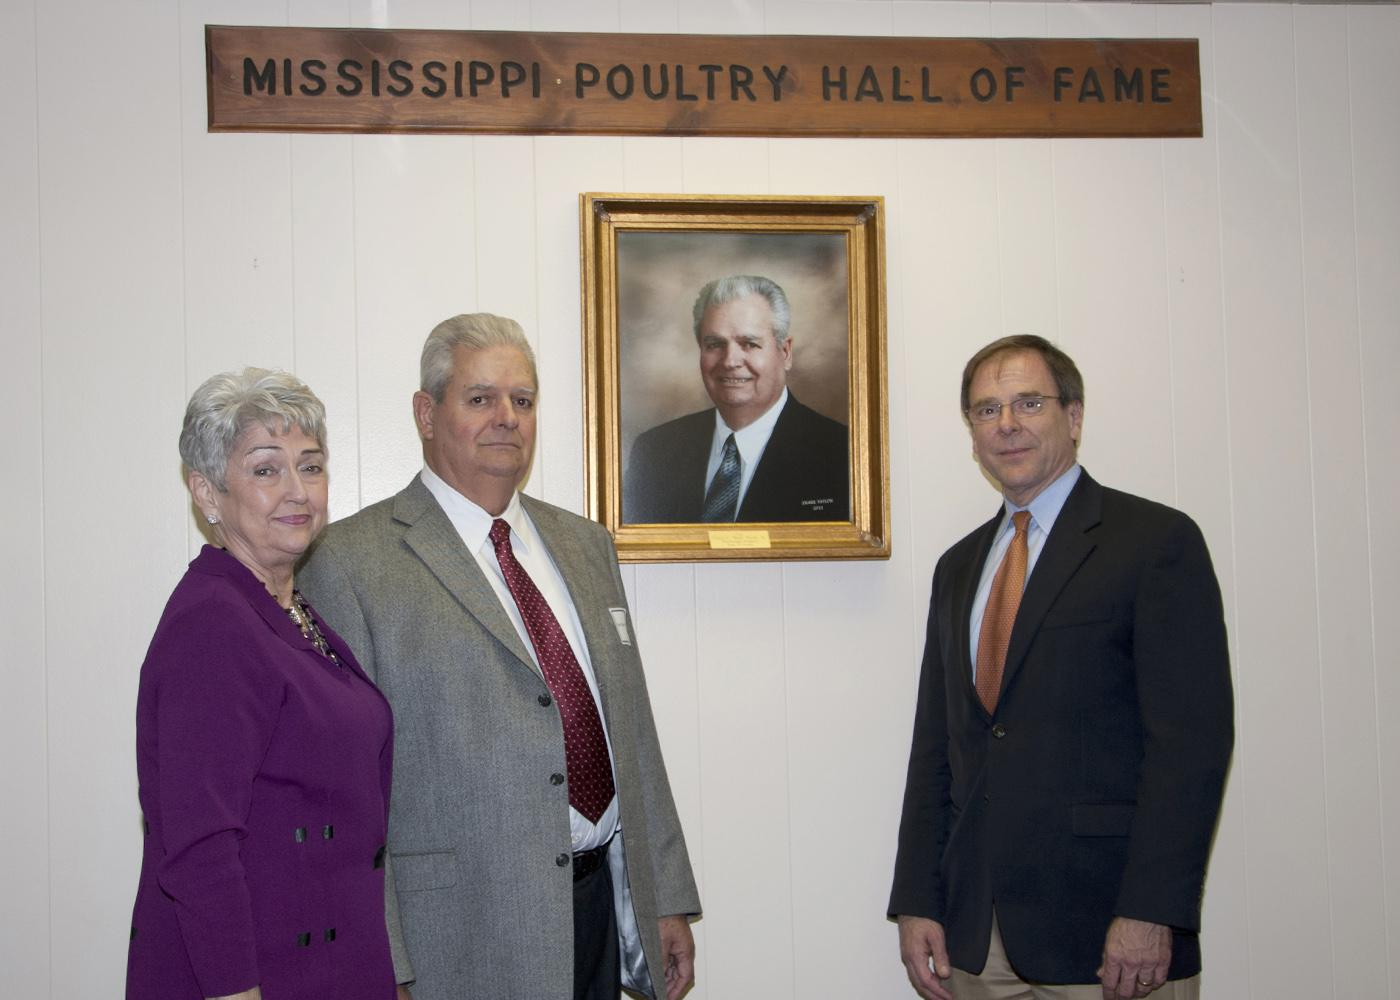 """Coyt """"Bud"""" West was inducted into the Mississippi Poultry Association's Hall of Fame for his many years of dedication to the poultry industry. West was joined by his wife, Gwen (left), and Mississippi Poultry Association President Mark Leggett (far right) at the Nov. 17 event. (Photo by Kat Lawrence)"""